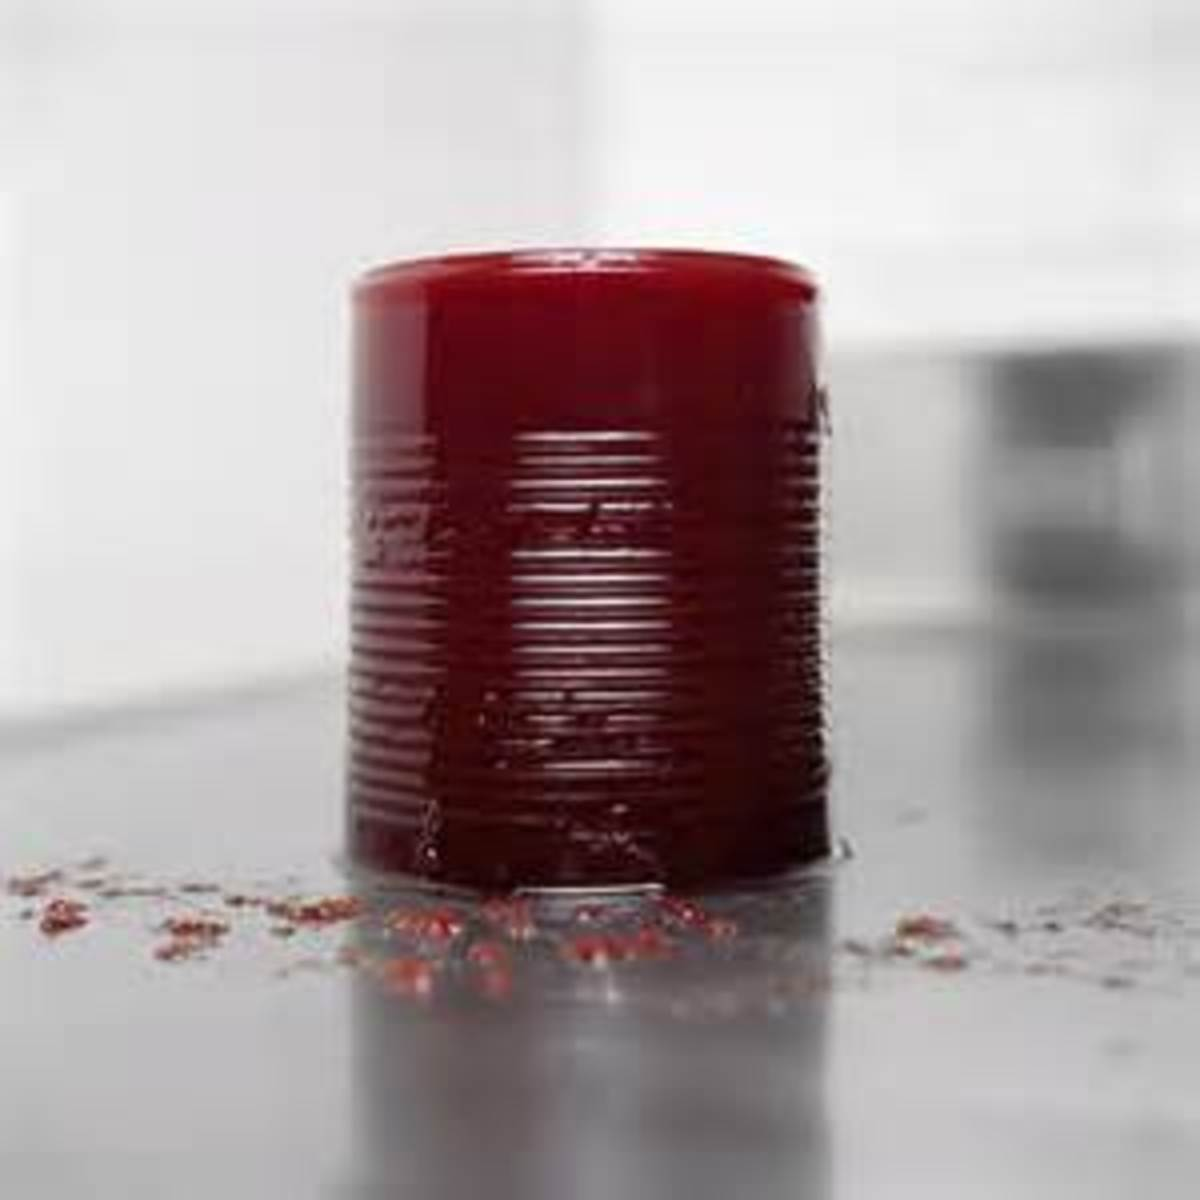 Cranberry Sauce (It's called).